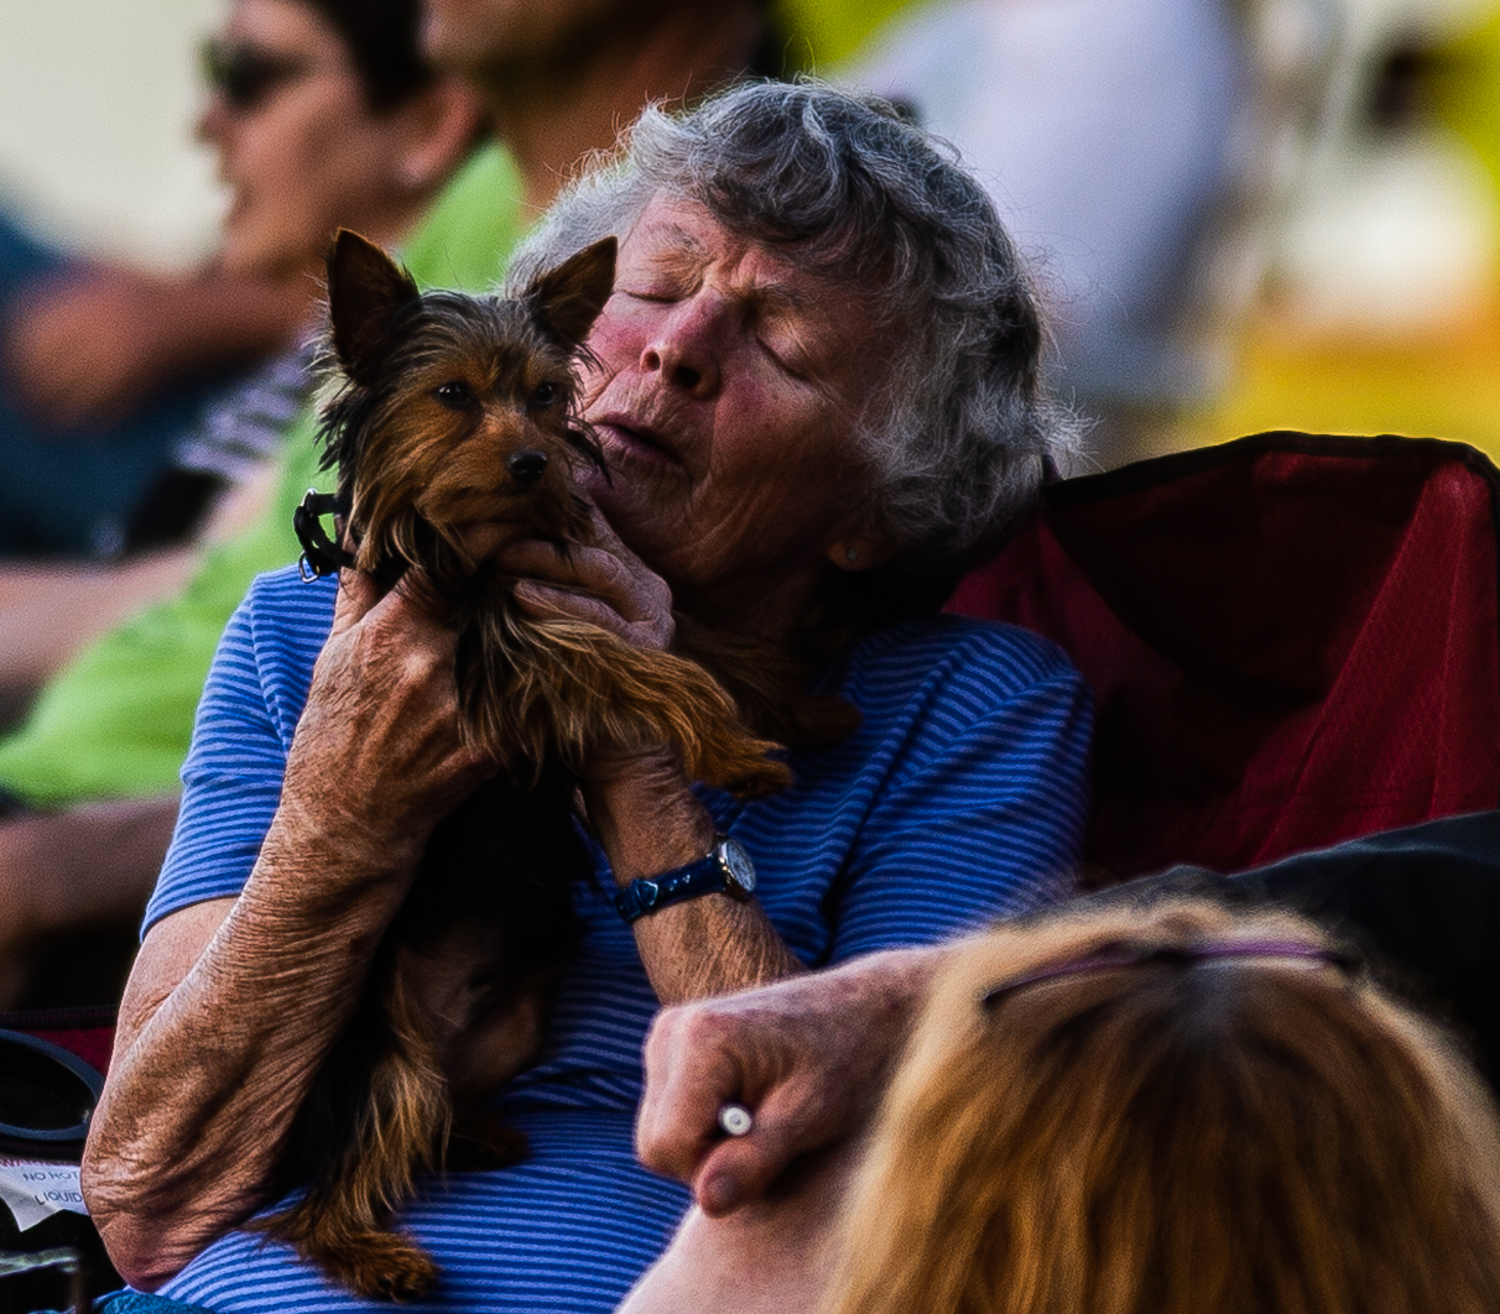 Phyllis Prichard sings along to a song to Bear her Yorkshire Terrier during the Concerts by the River at Rhodes Ferry Park in Decatur, Ala. on May 6, 2019.